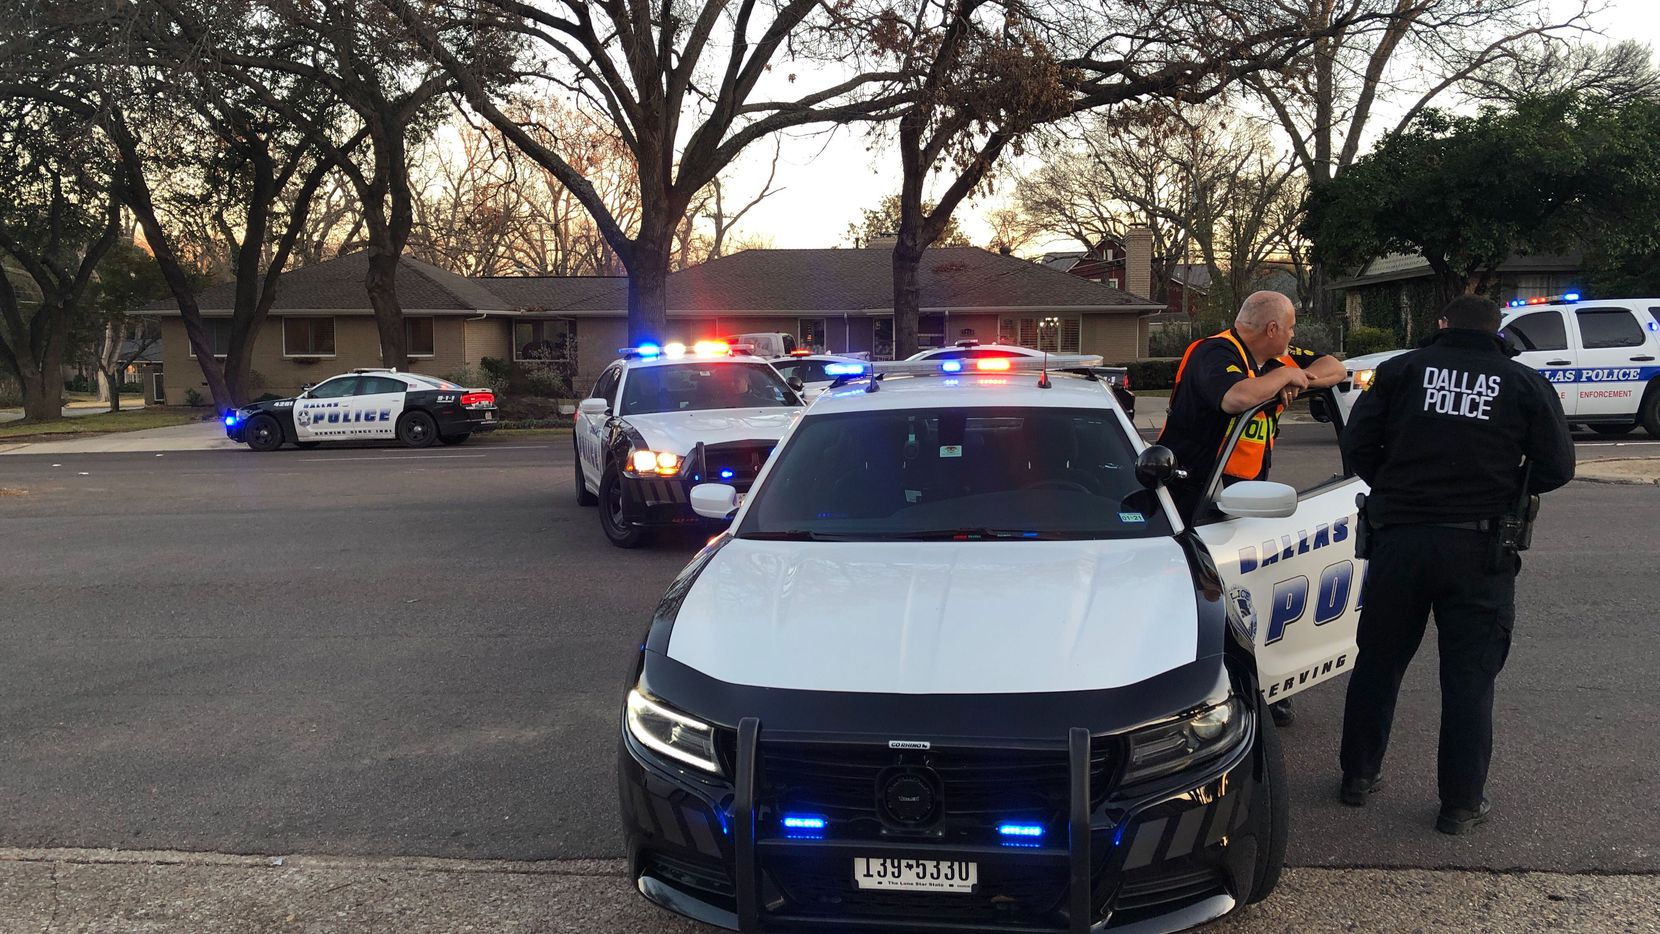 Dallas police blocked off the area where an officer crashed Sunday afternoon in the 7300 block of East Mockingbird Lane, near the northwest corner of White Rock Lake.